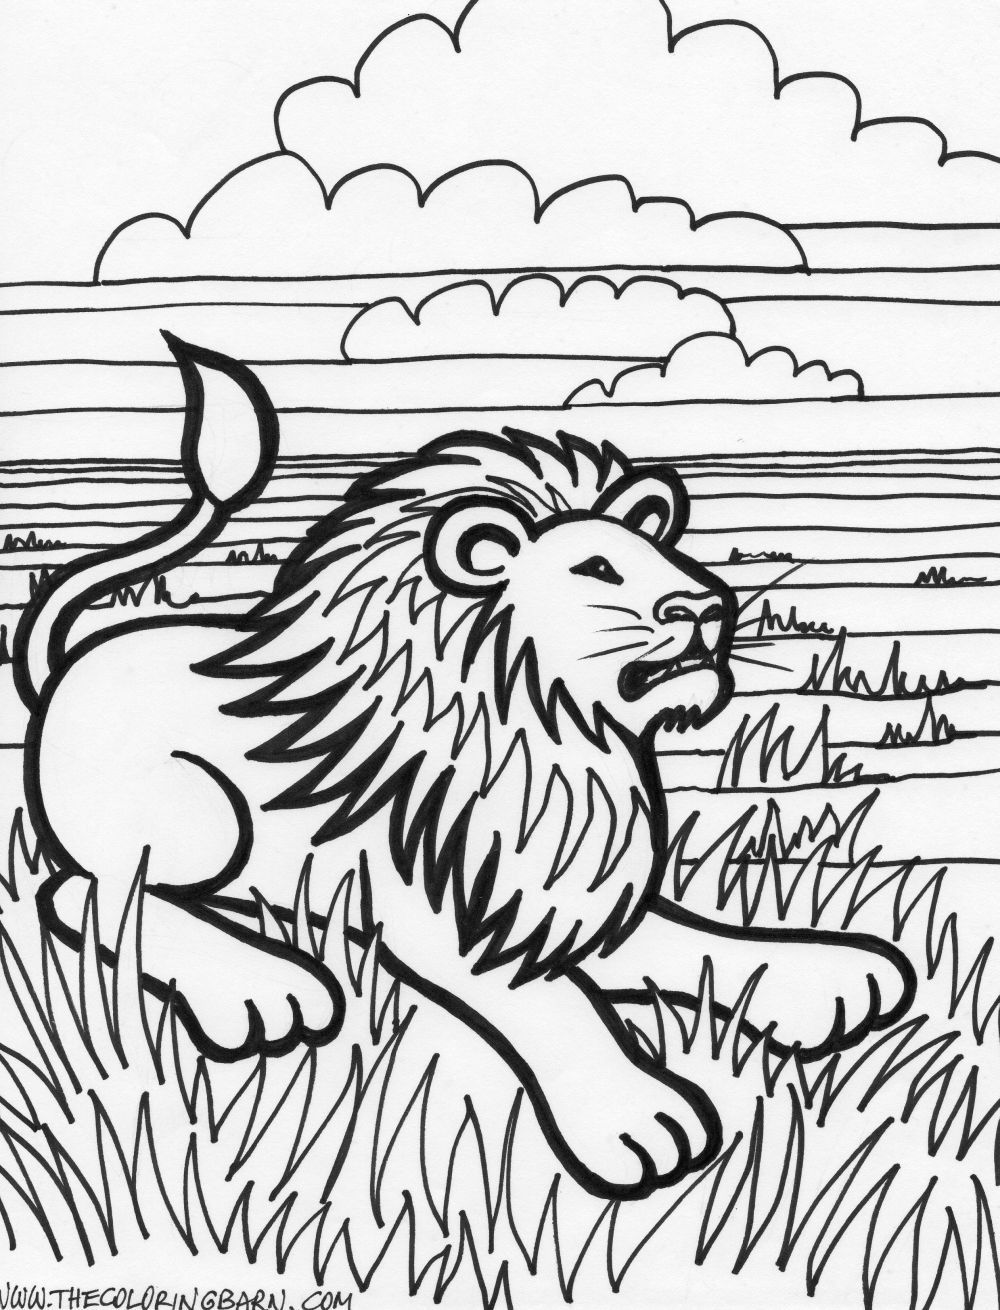 Pin By Linsey Mckenzie On Art General Ideas Animal Coloring Pages Art Coloring Pages Coloring Pages